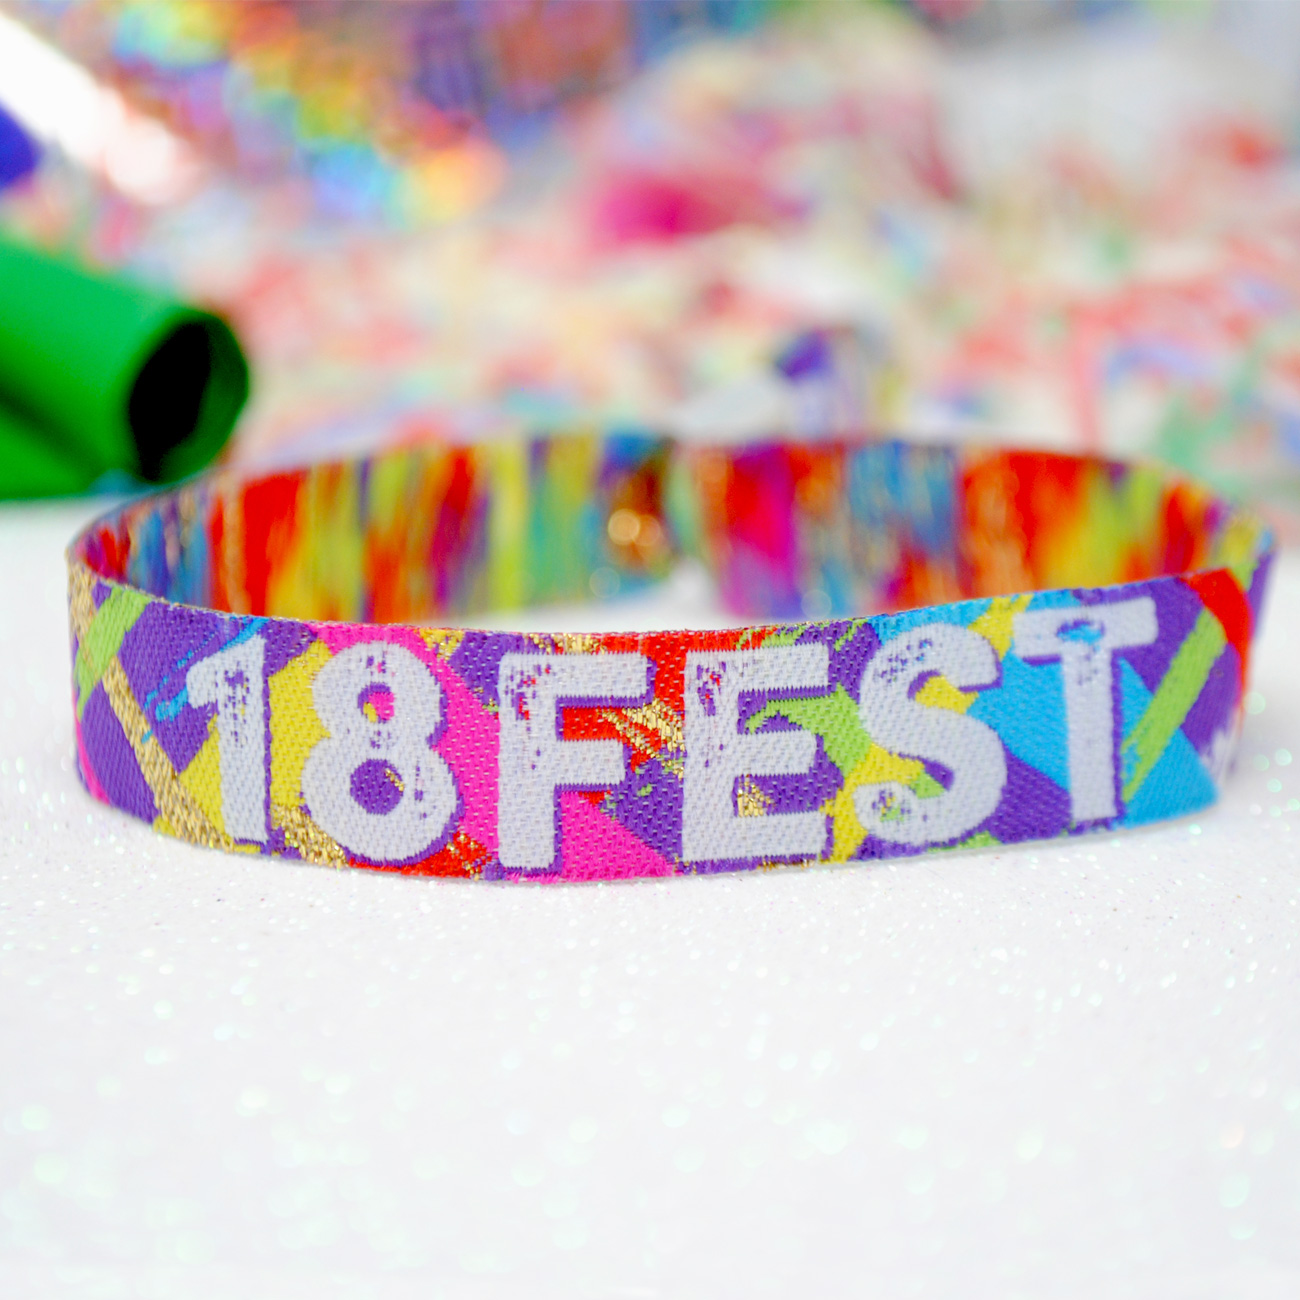 18FEST 18th birthday party wristbands